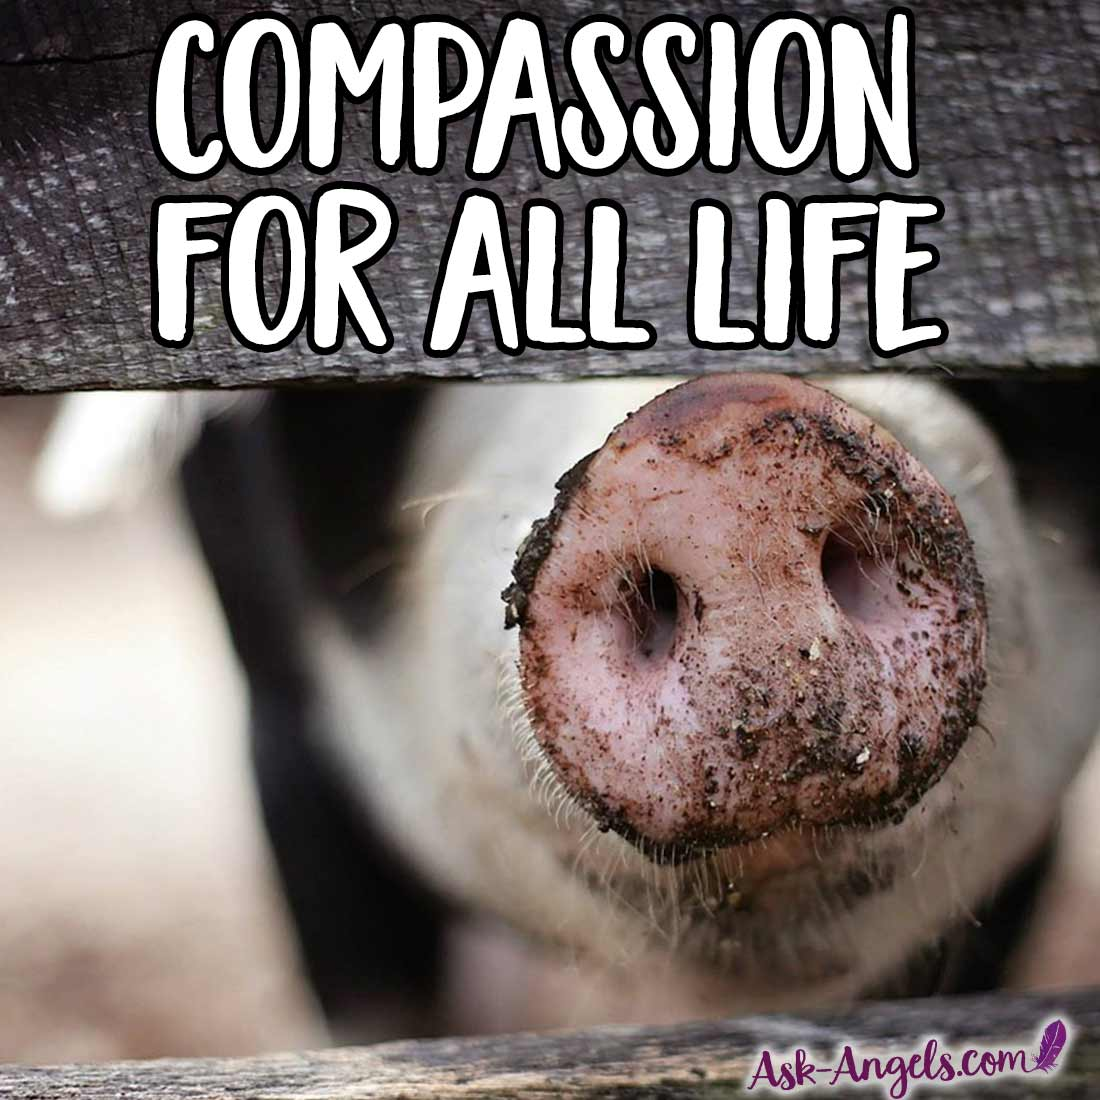 Compassion for All Life